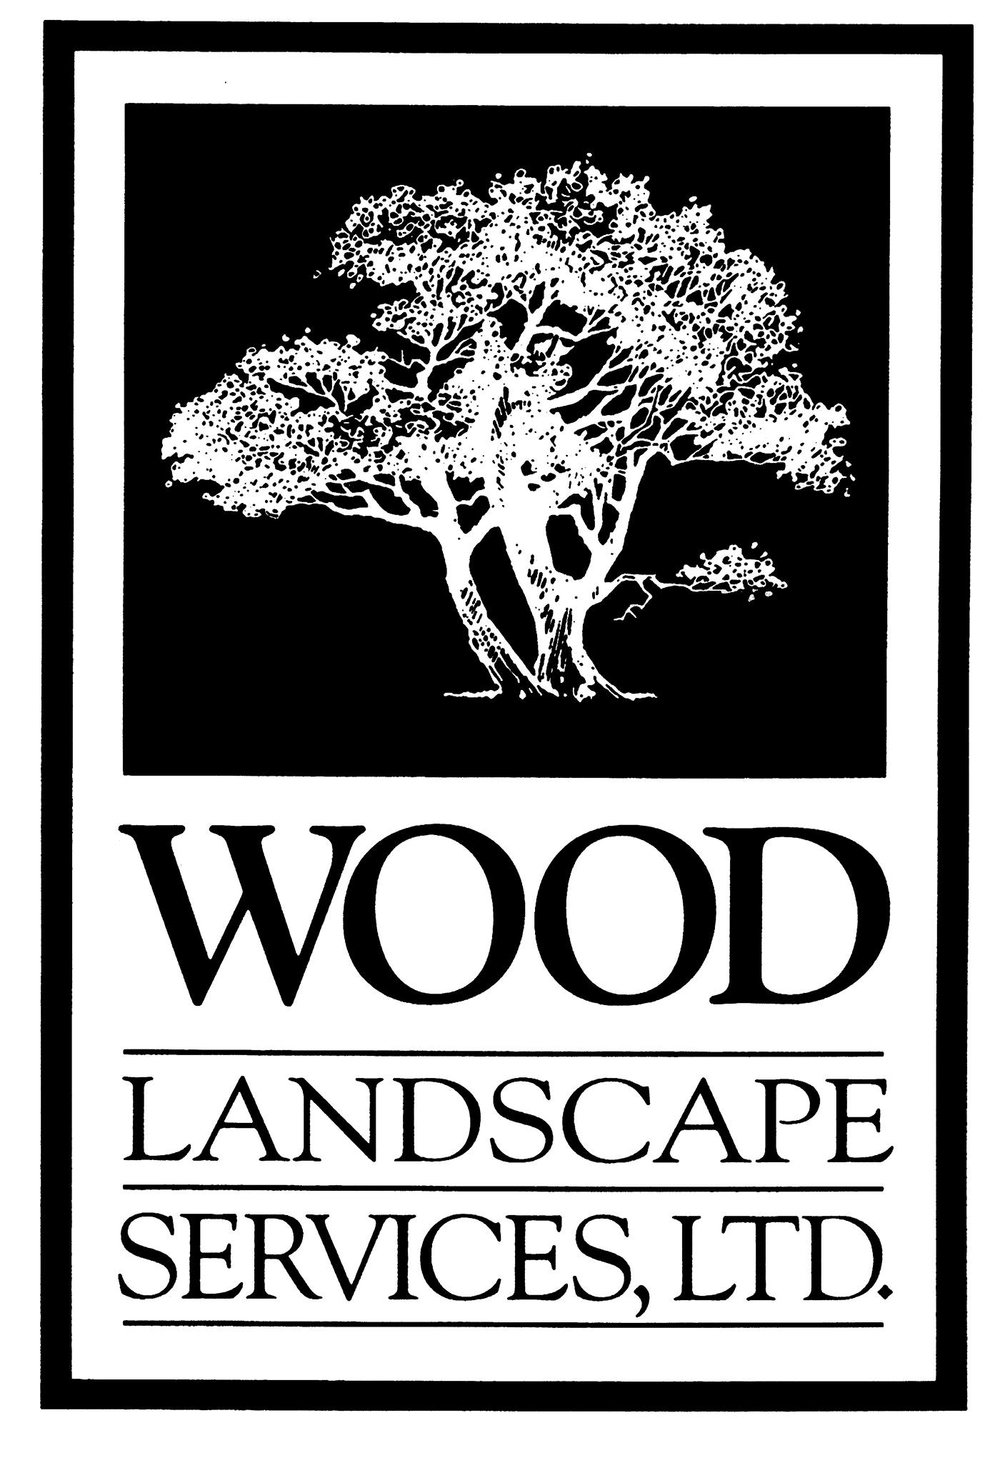 Wood Landscape Services.jpg